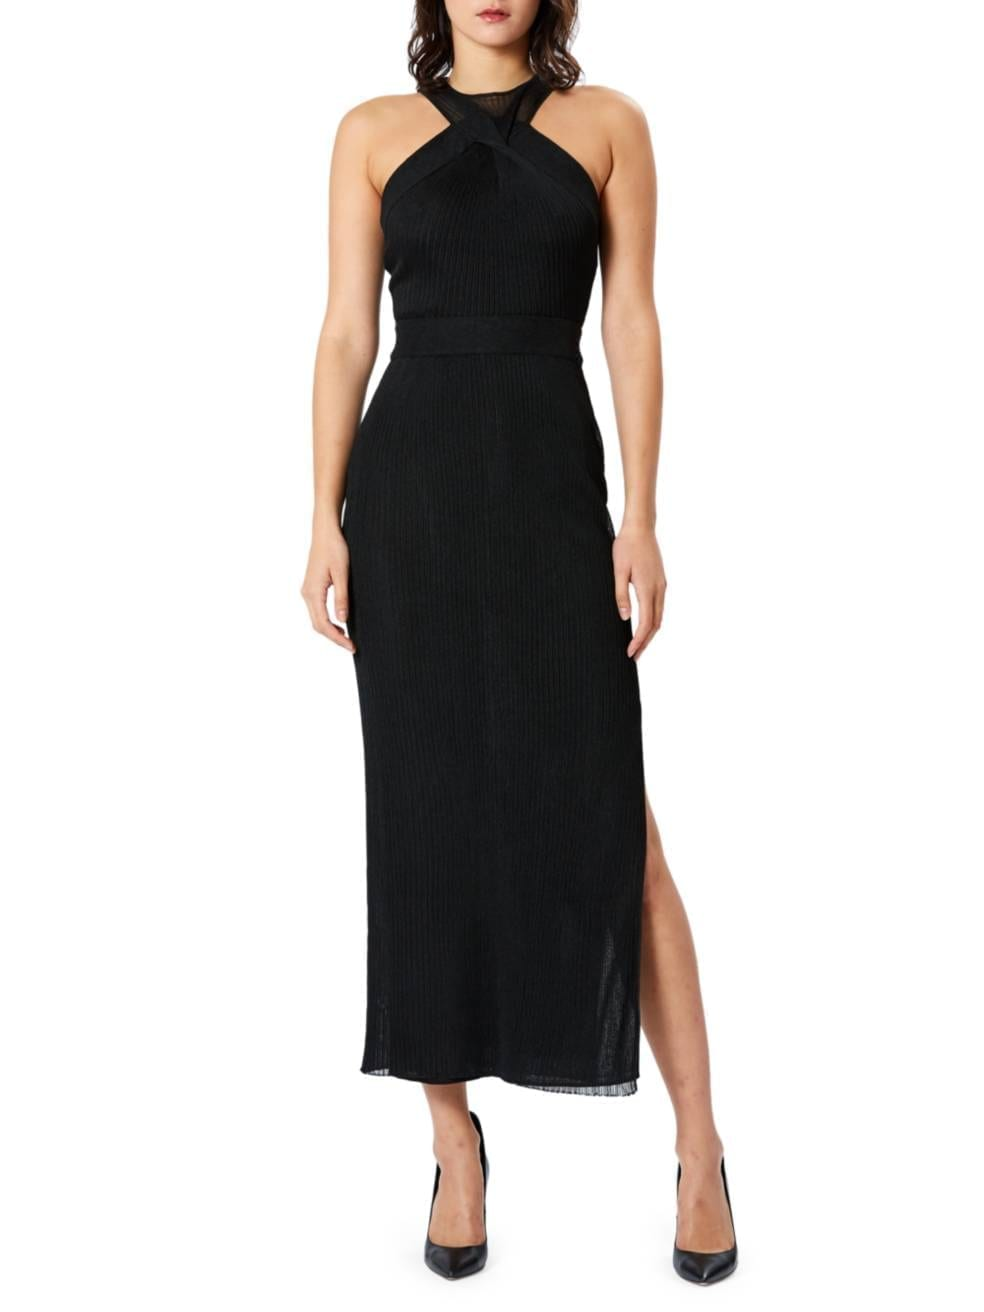 HERVE LEGER Twisted Drape Knit Gown